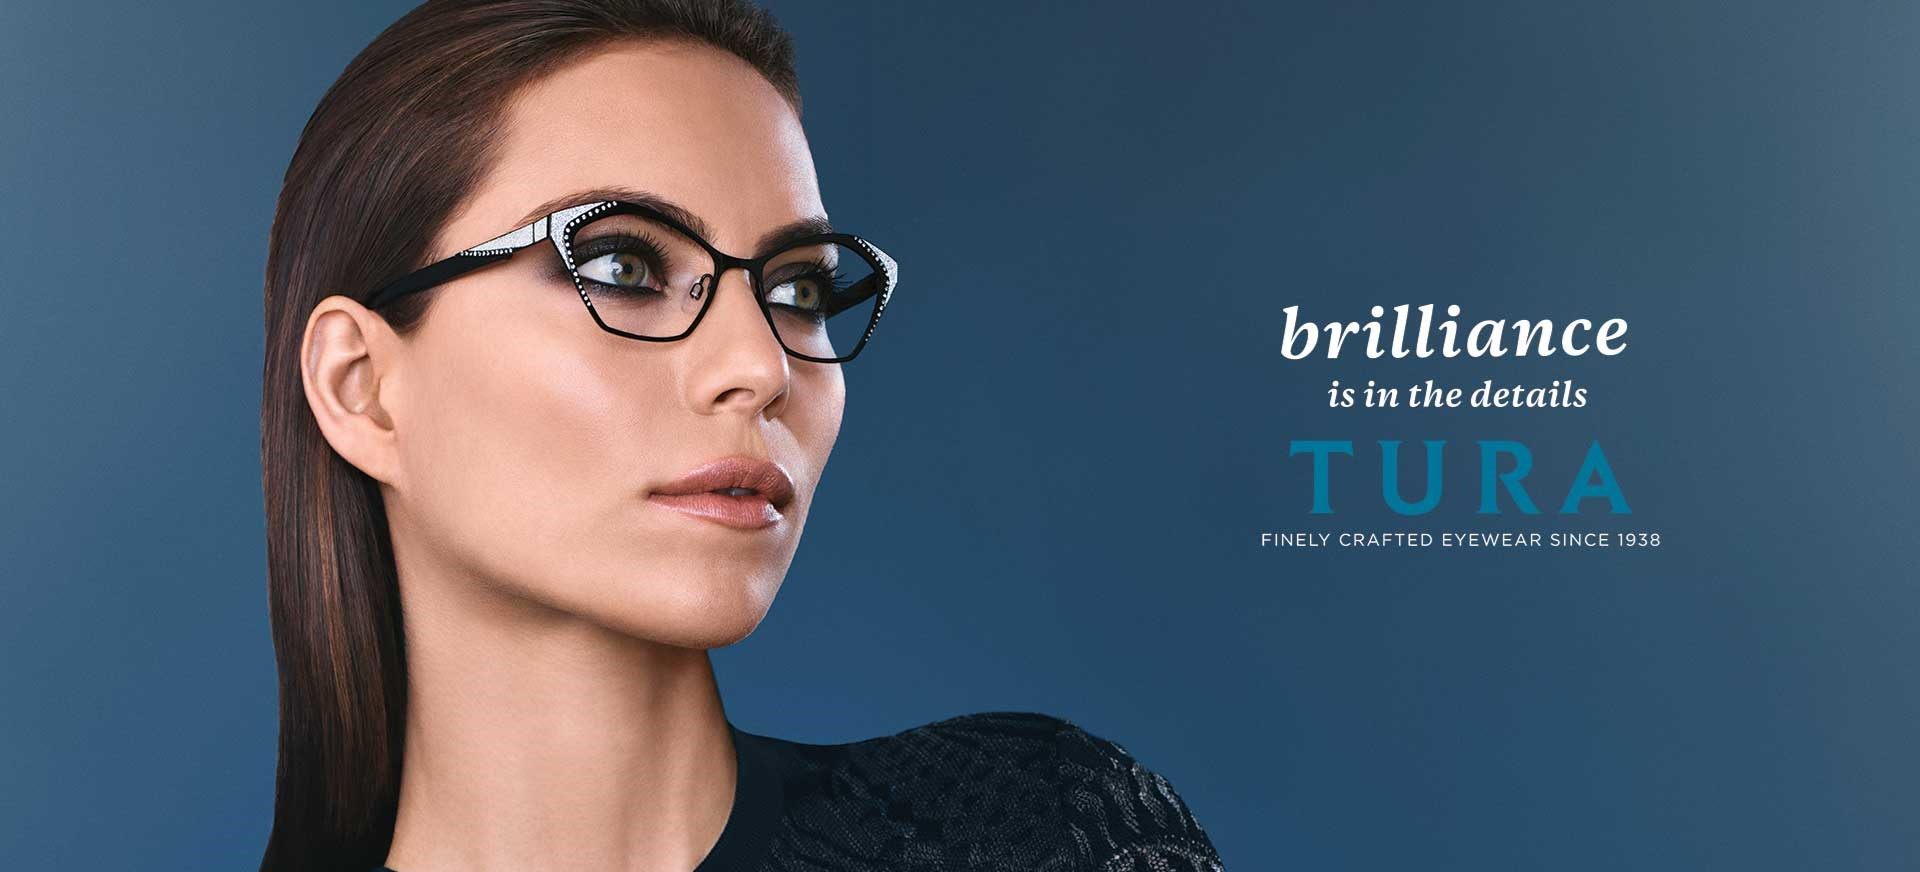 tura womens eyewear brilliance collection